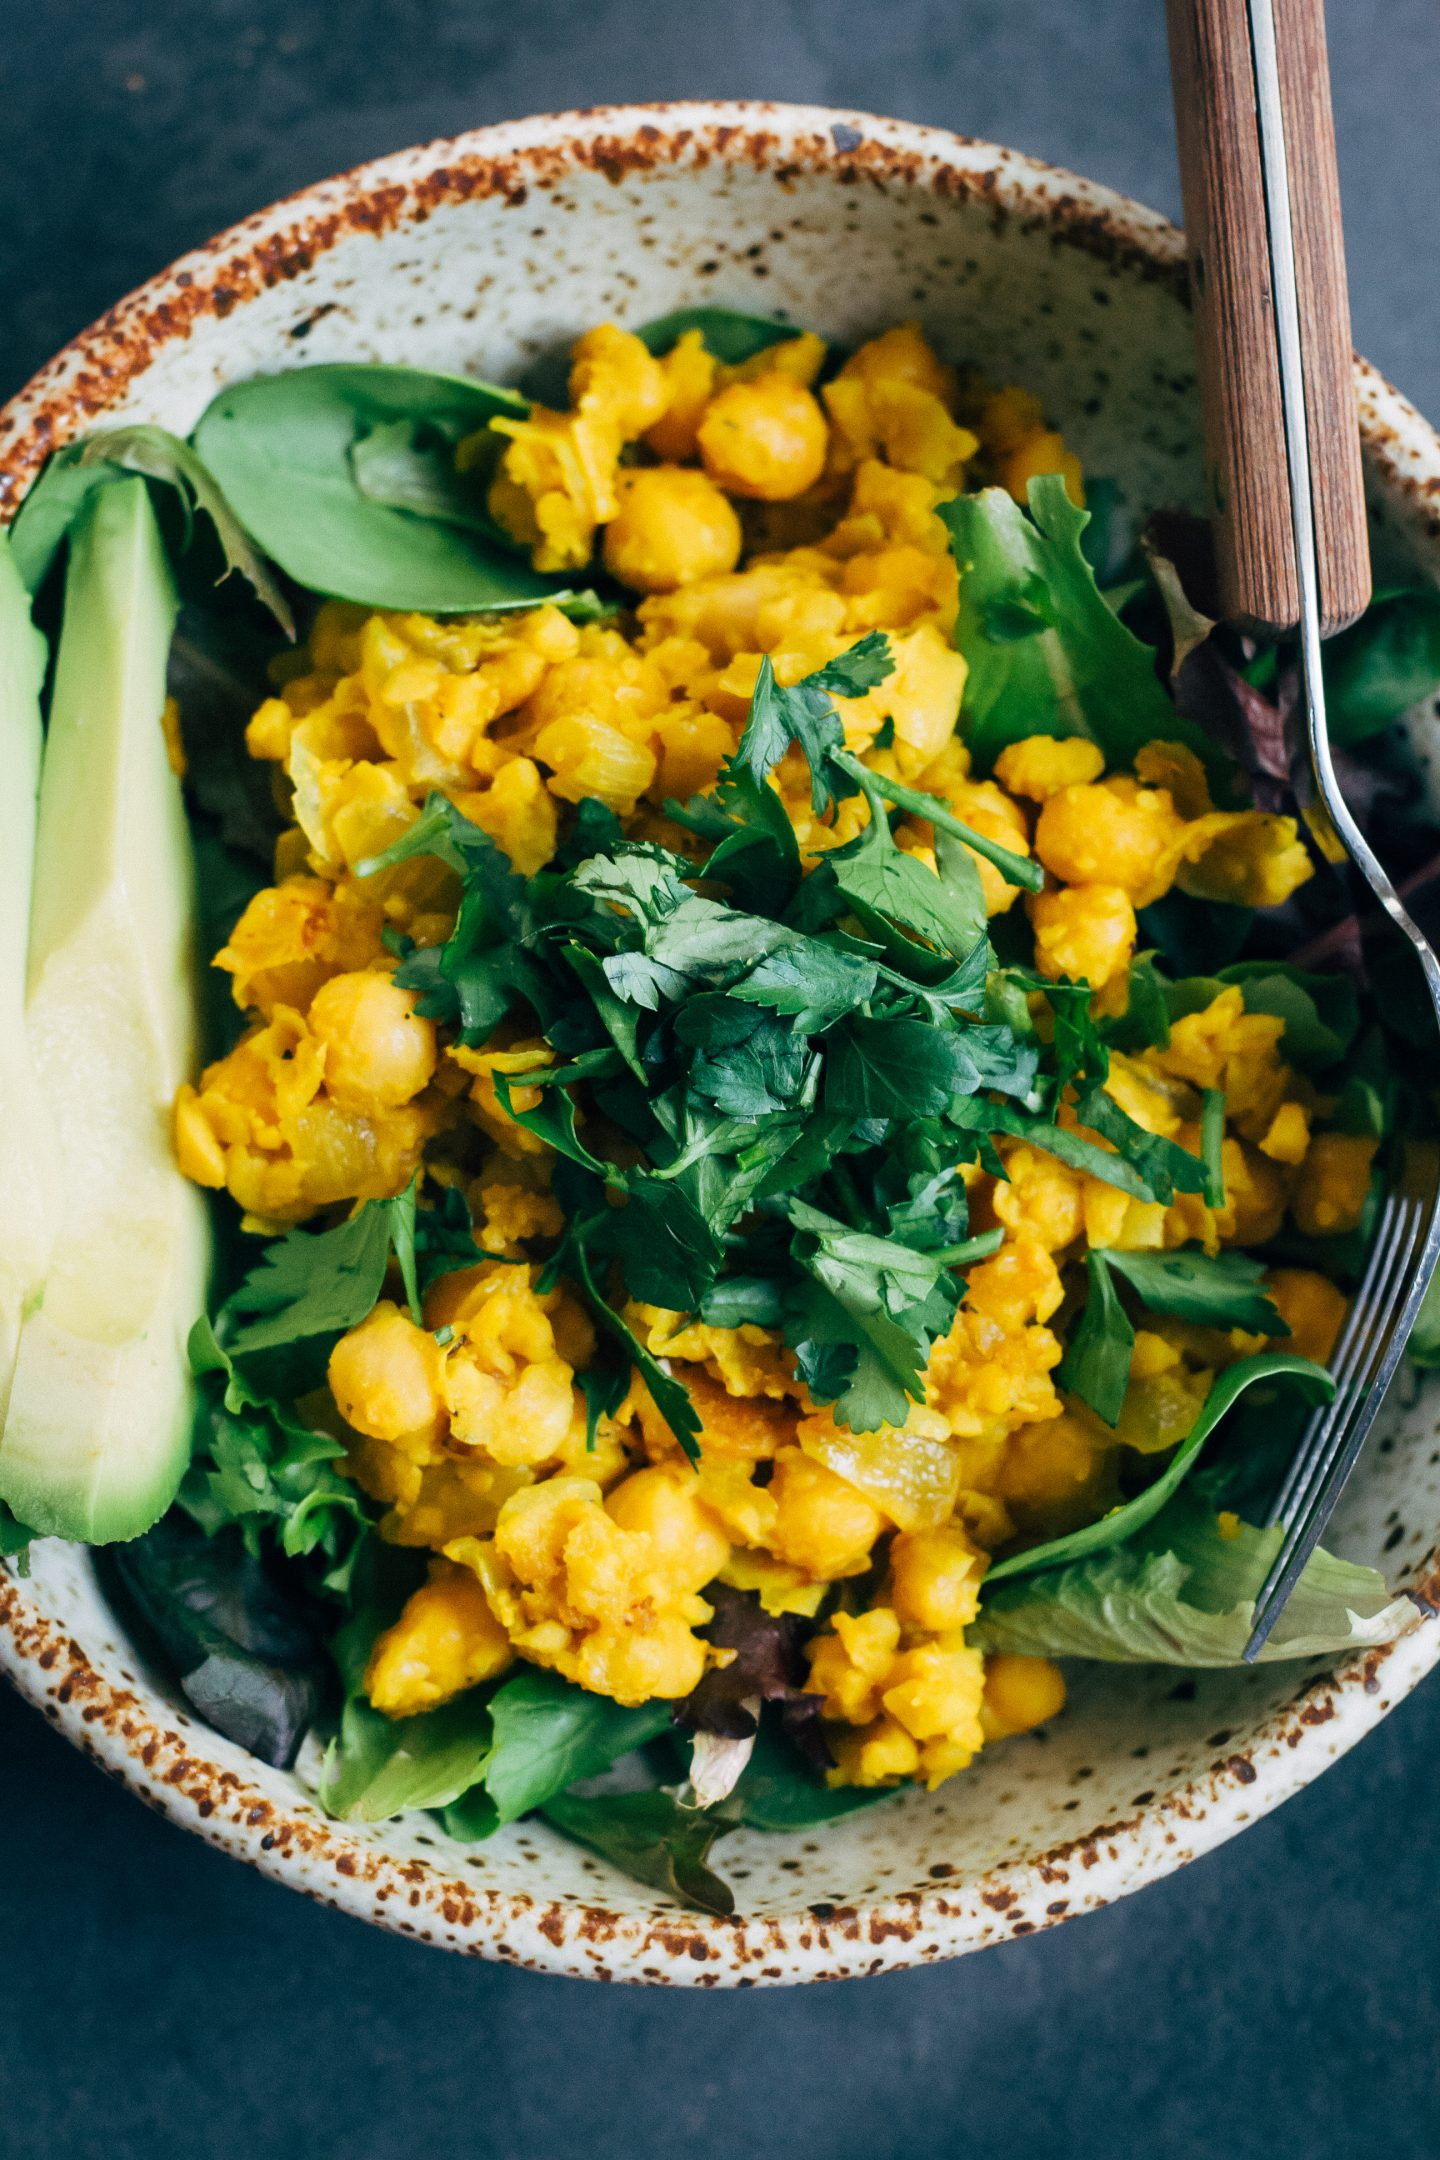 Chickpea Scramble Breakfast Bowl and 17 More Protein Packed Vegan Breakfast Ideas that are perfect for busy mornings and on the go. It's easy to eat clean and achieve your weight loss and fitness goals with these delicious recipes for your busy morning. From smoothies, tofu scrambles to overnight oats, you're sure to find something you love. #vegan #protein